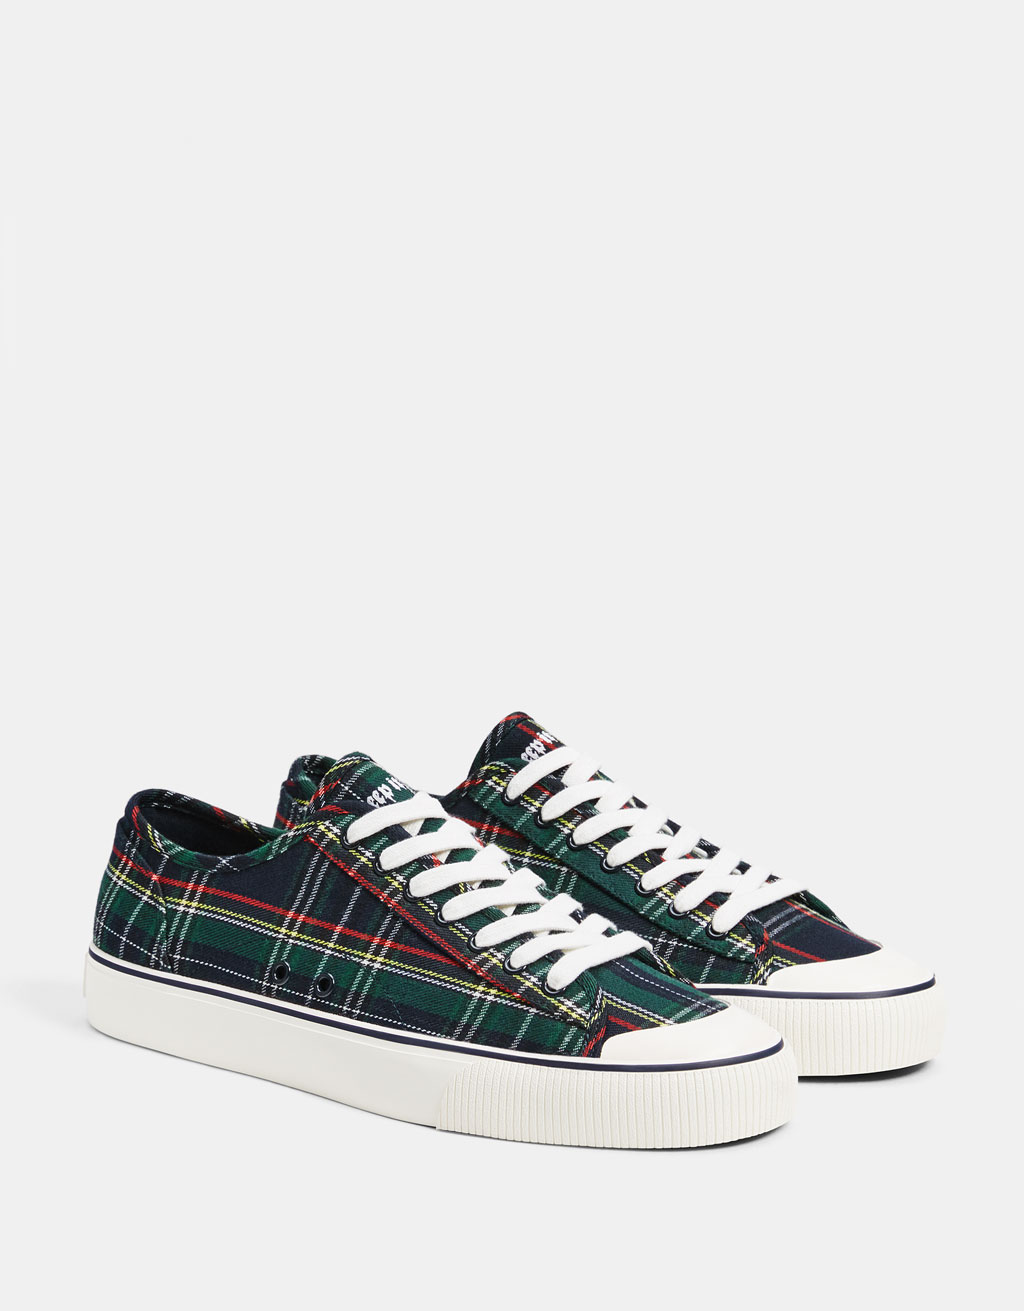 Men's plaid sneakers